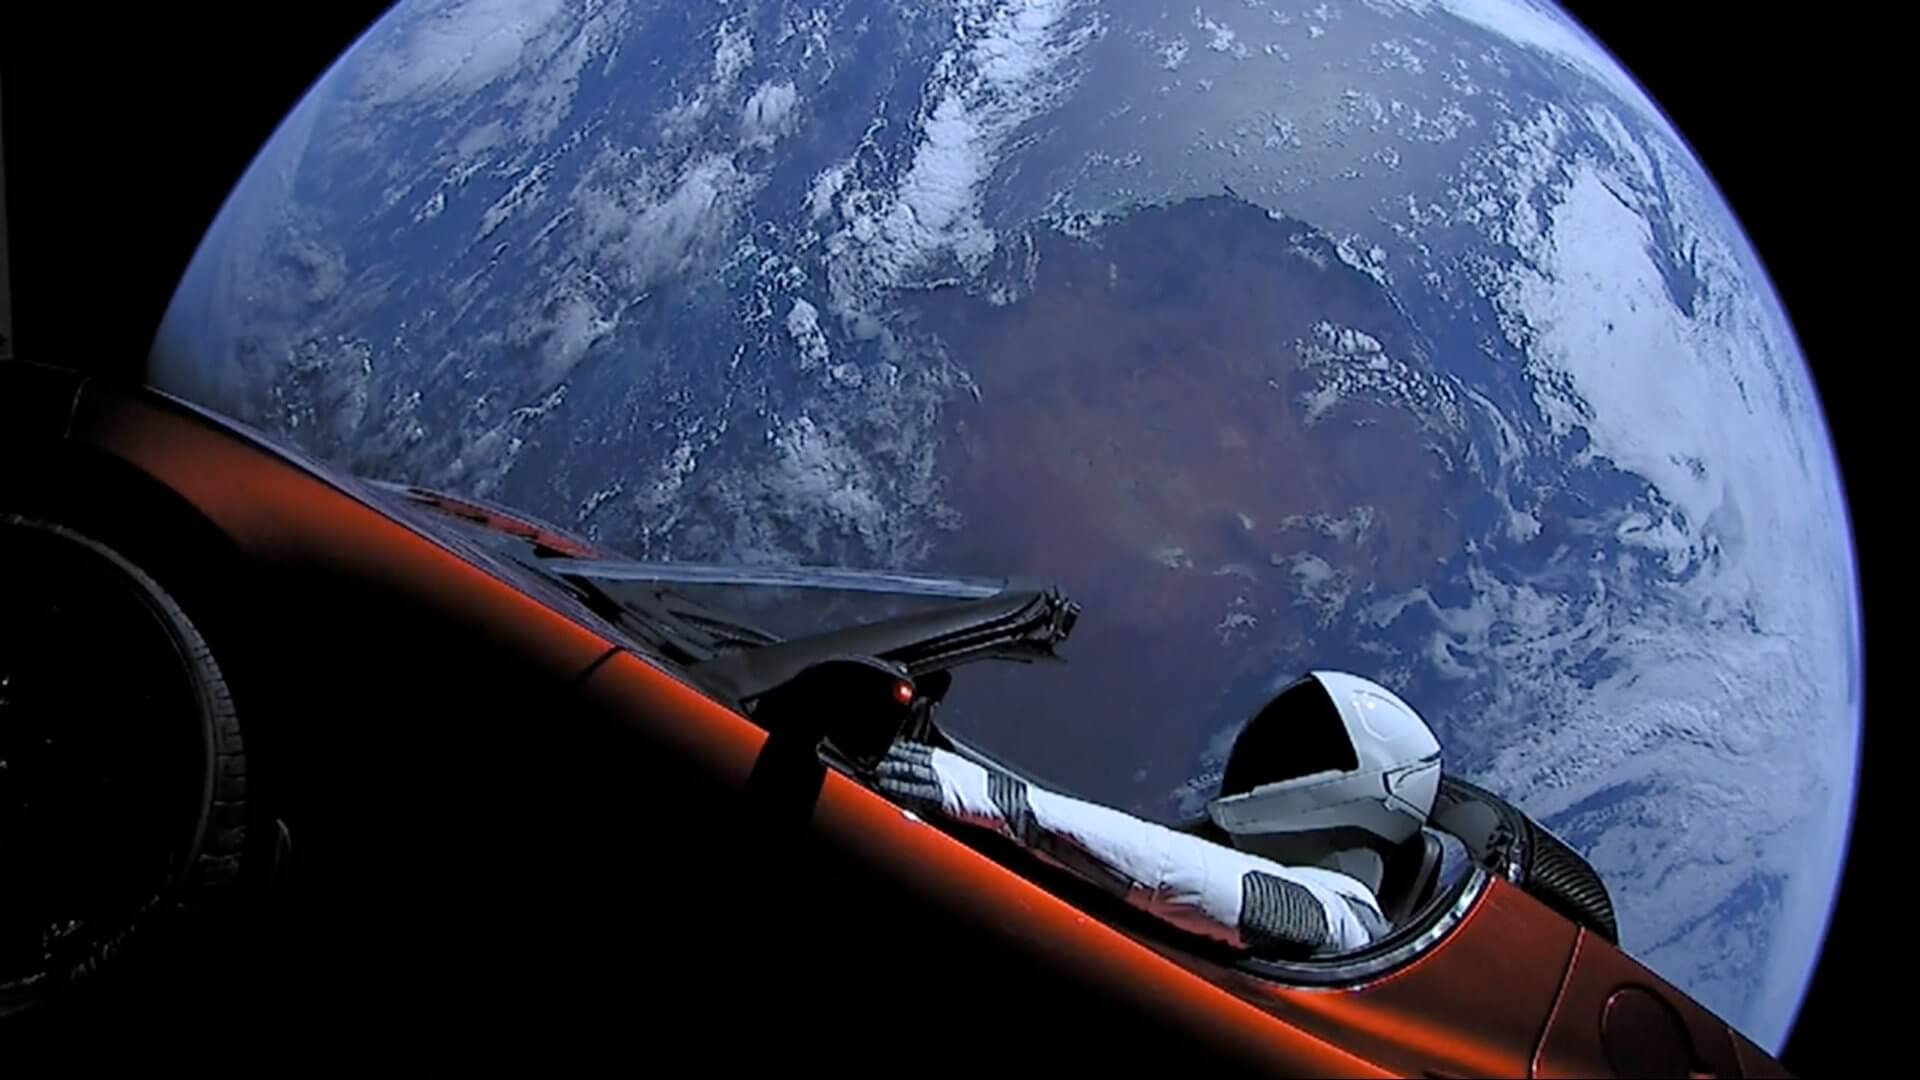 Spaceman Tesla Roadster In orbit Space X